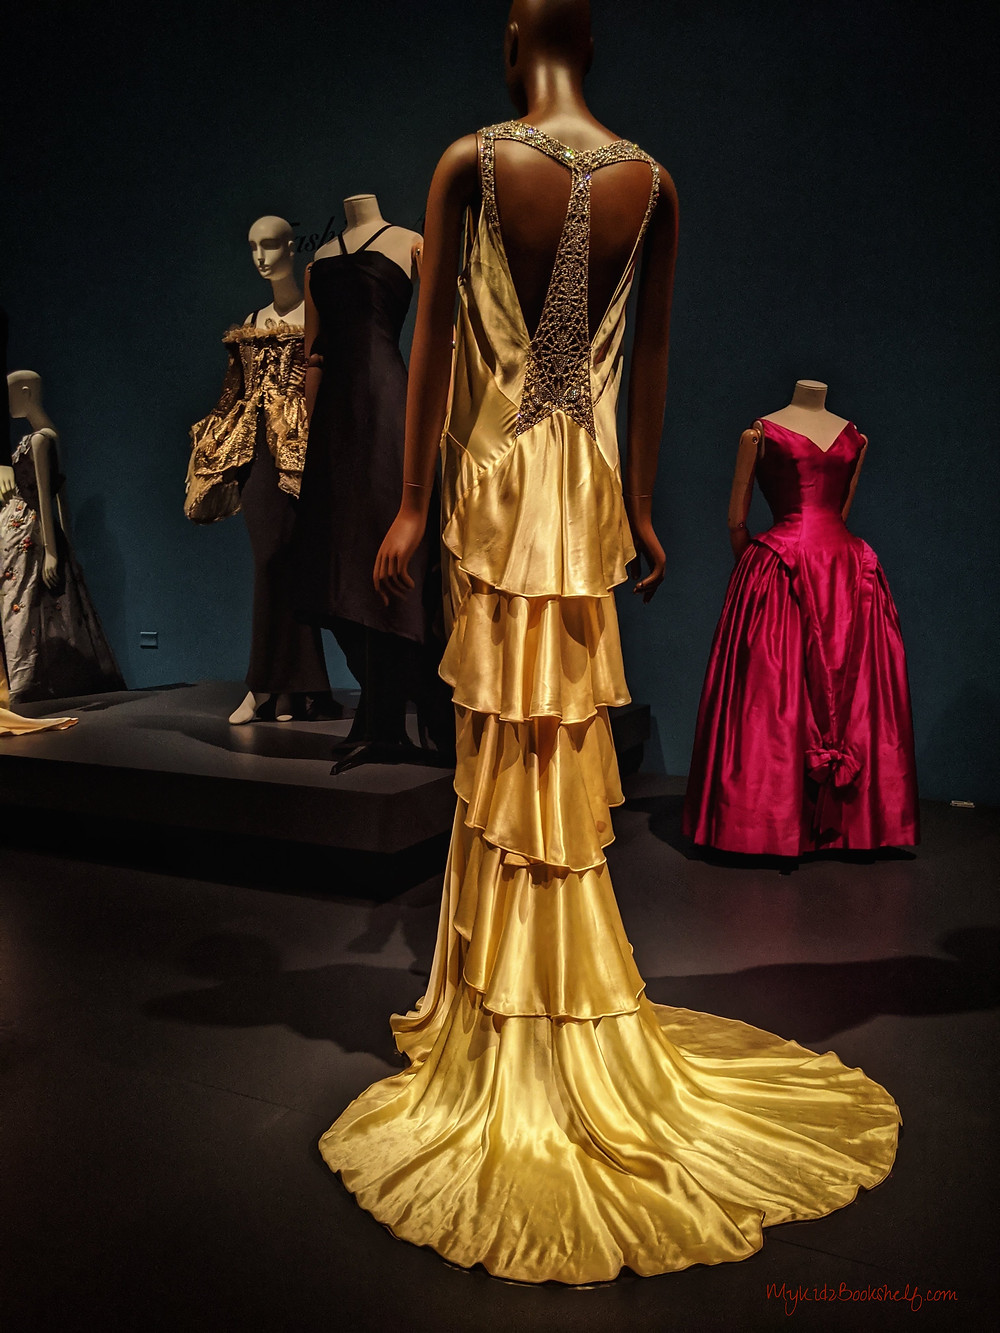 long-gold-open-backed-gown-as-part-of-paris-fashion-with-other-dresses-int-the-background